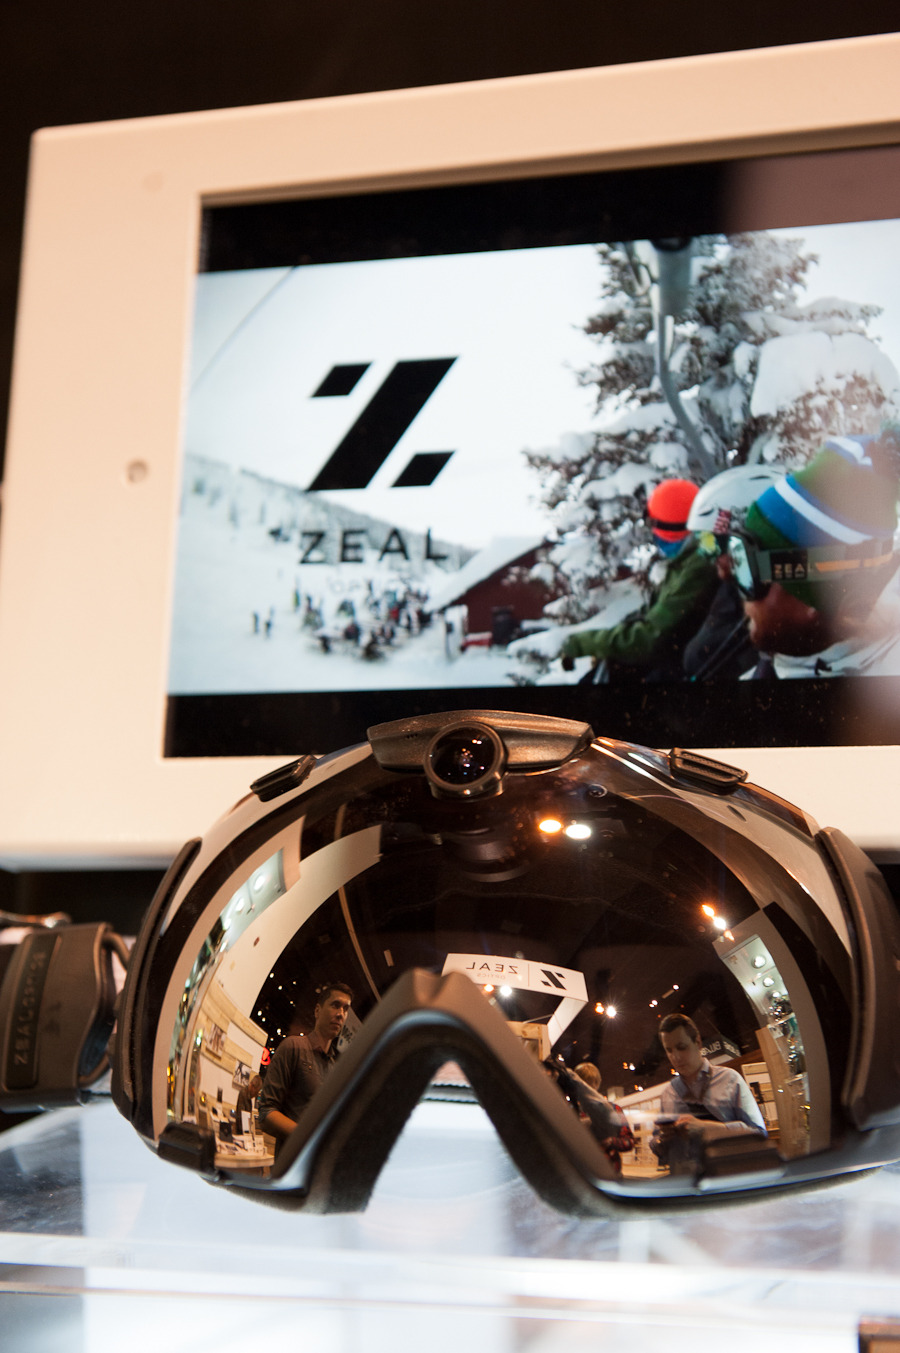 The impressive HD Camera Goggle from Zeal Optics shoots in 1080 HD at 120 FPS and takes 12 megapixel photos. The goggles come with an 8GB memory card and a mirrored lens, with the option to purchase a low light lens separately.  - © Ashleigh Miller Photography